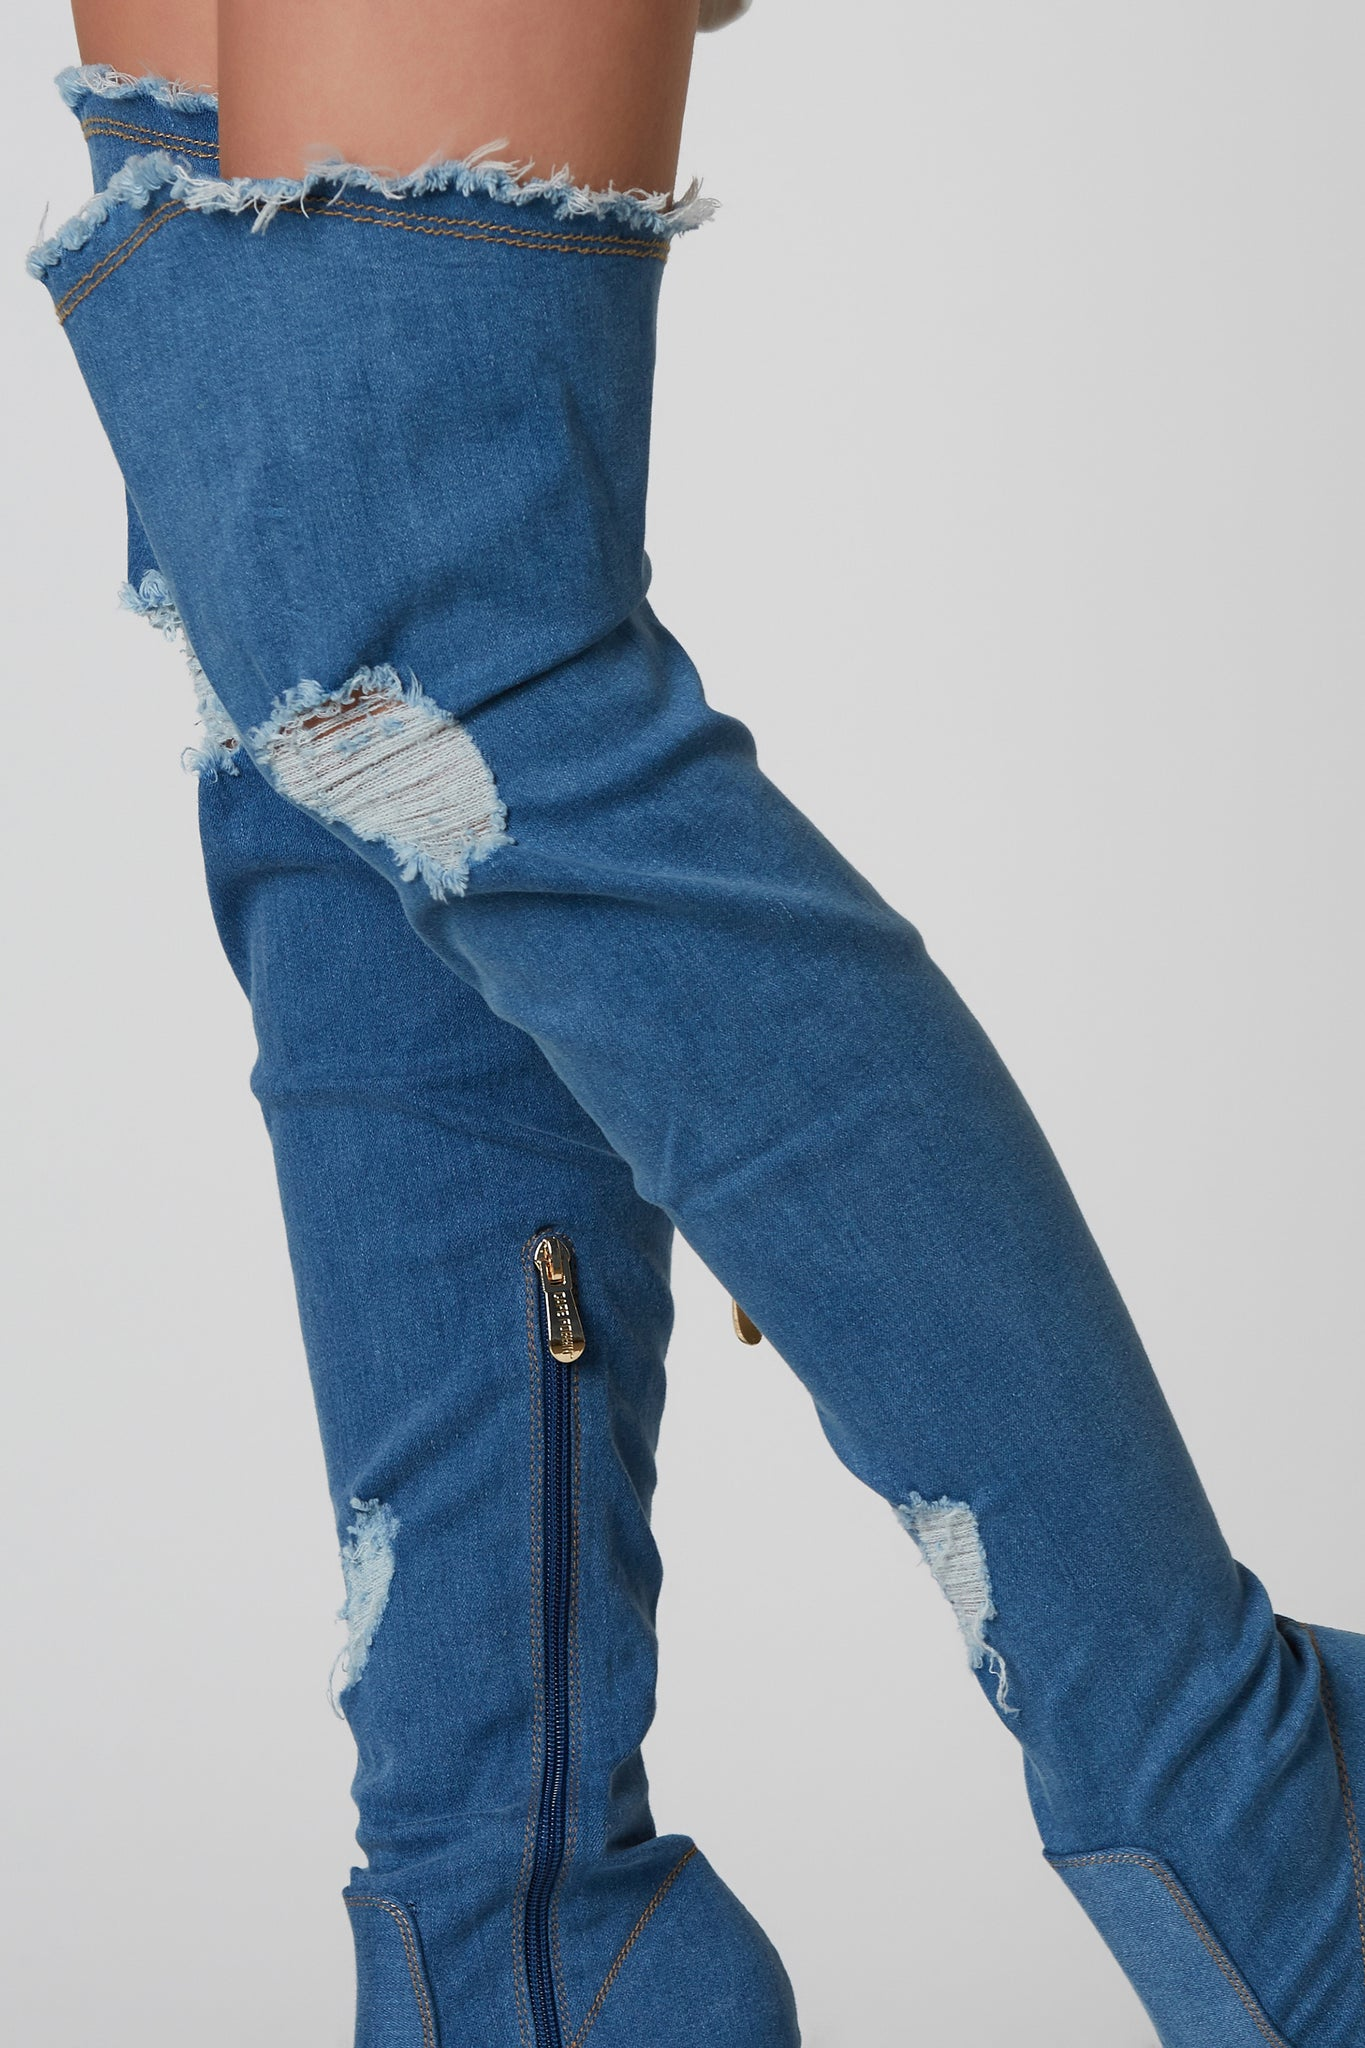 Sassy denim thigh highs with raw hem finish and distressed detailing. Peep toe finish with side zip closure.